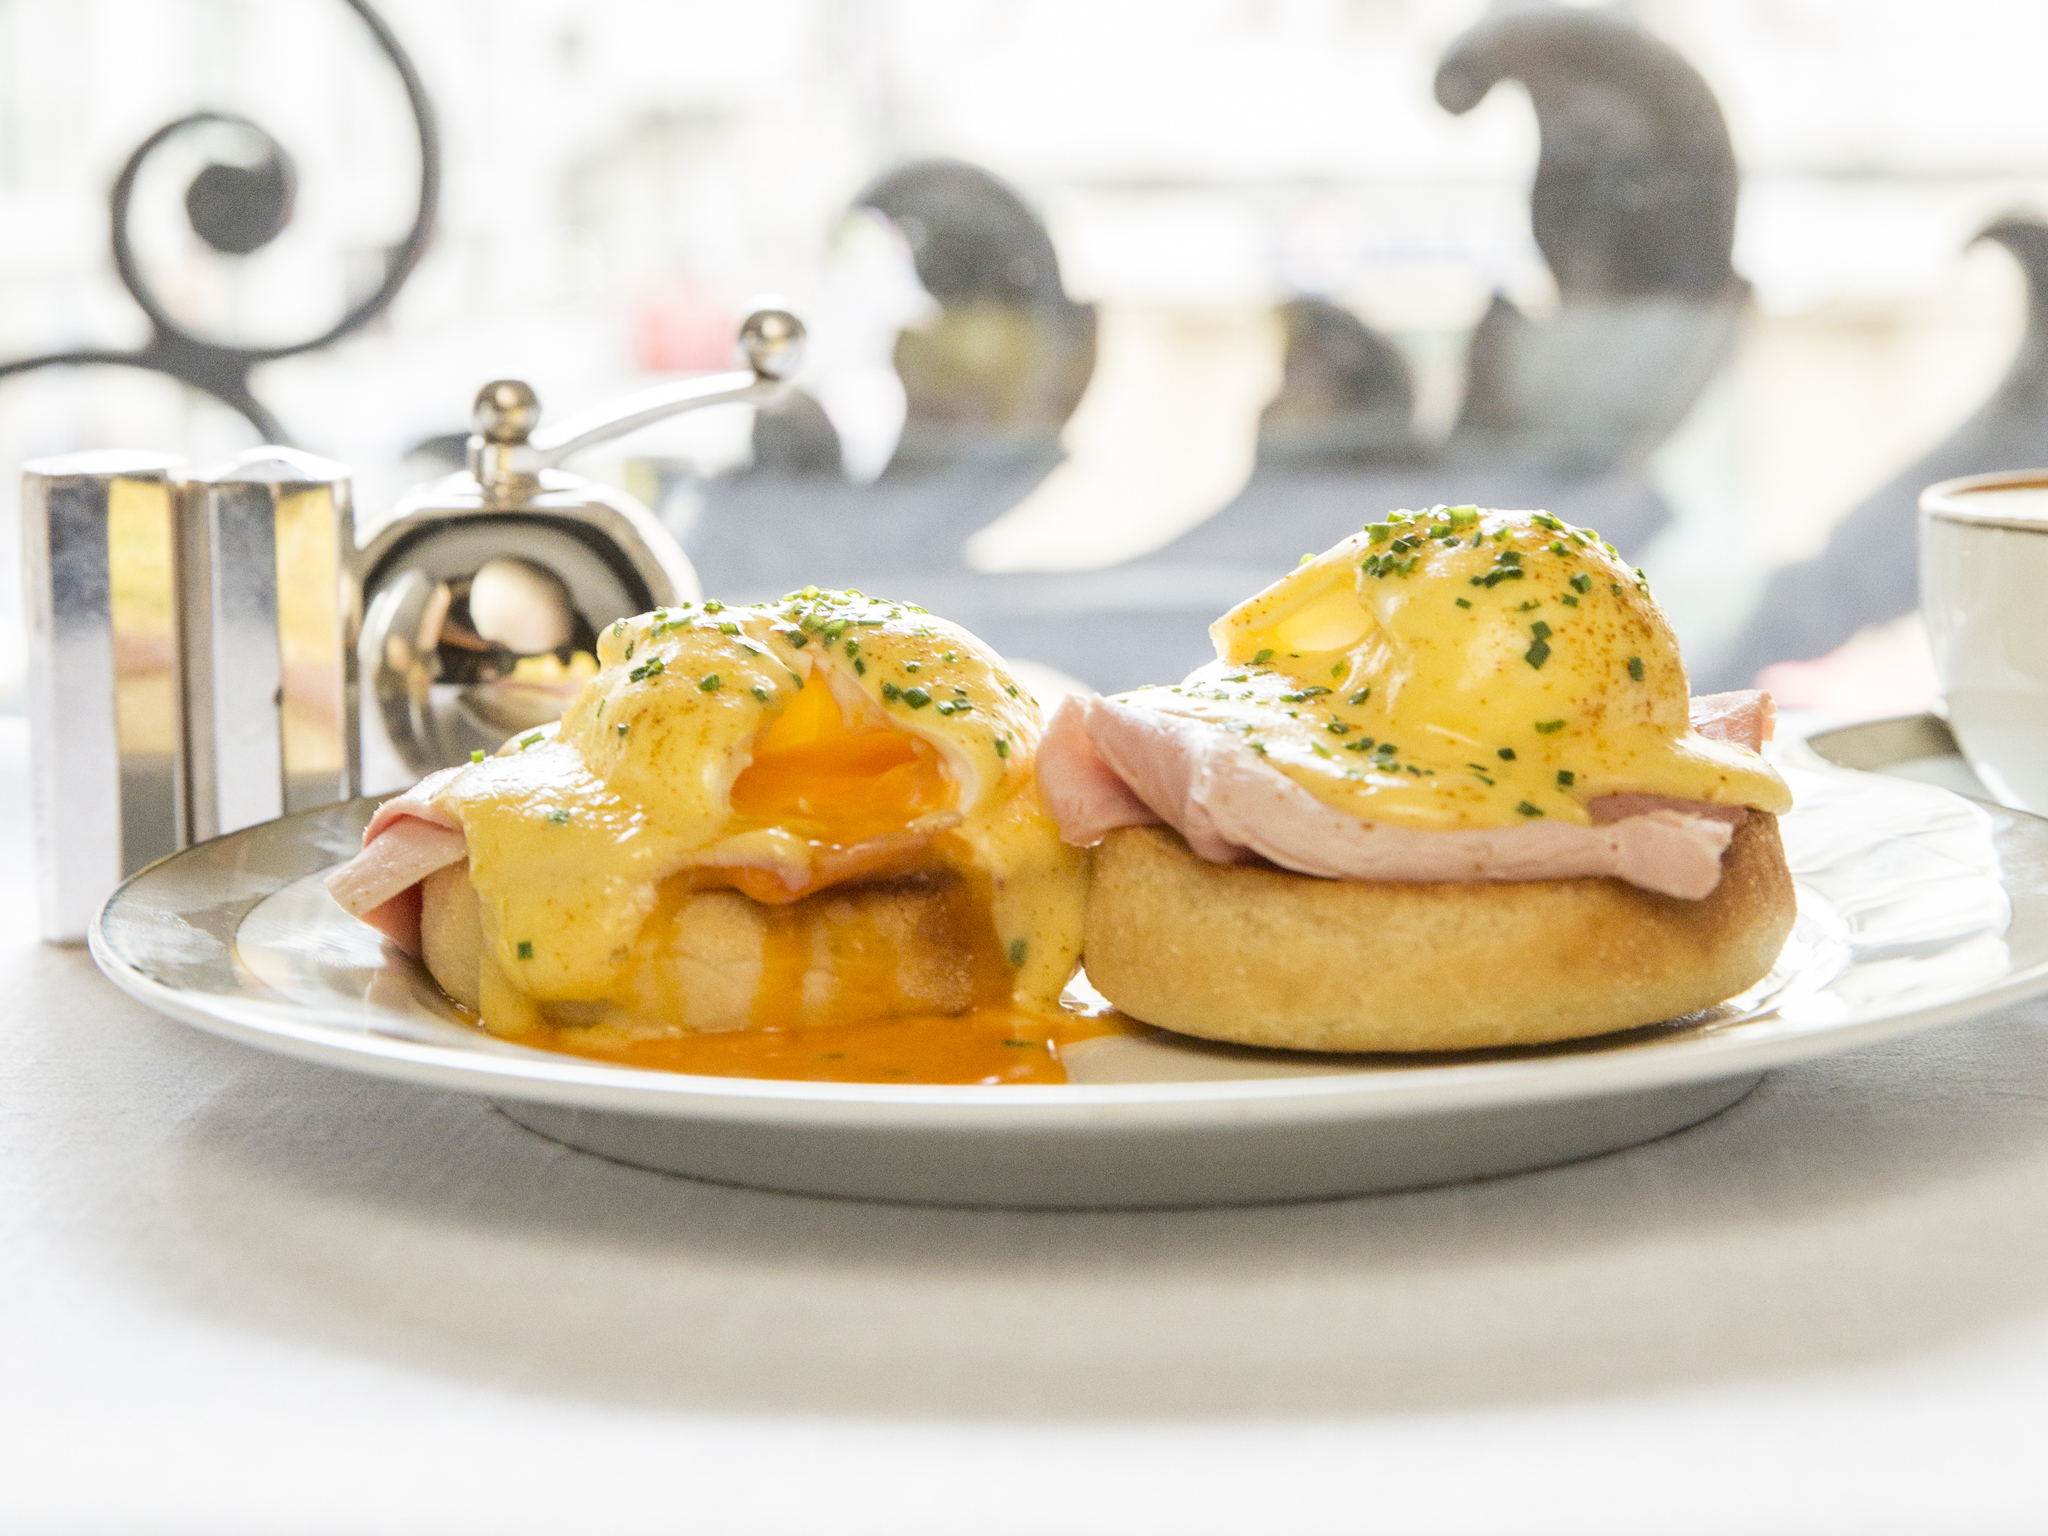 Eggs Benedict  at The Wolseley,  £7.50 small, £14.50 large